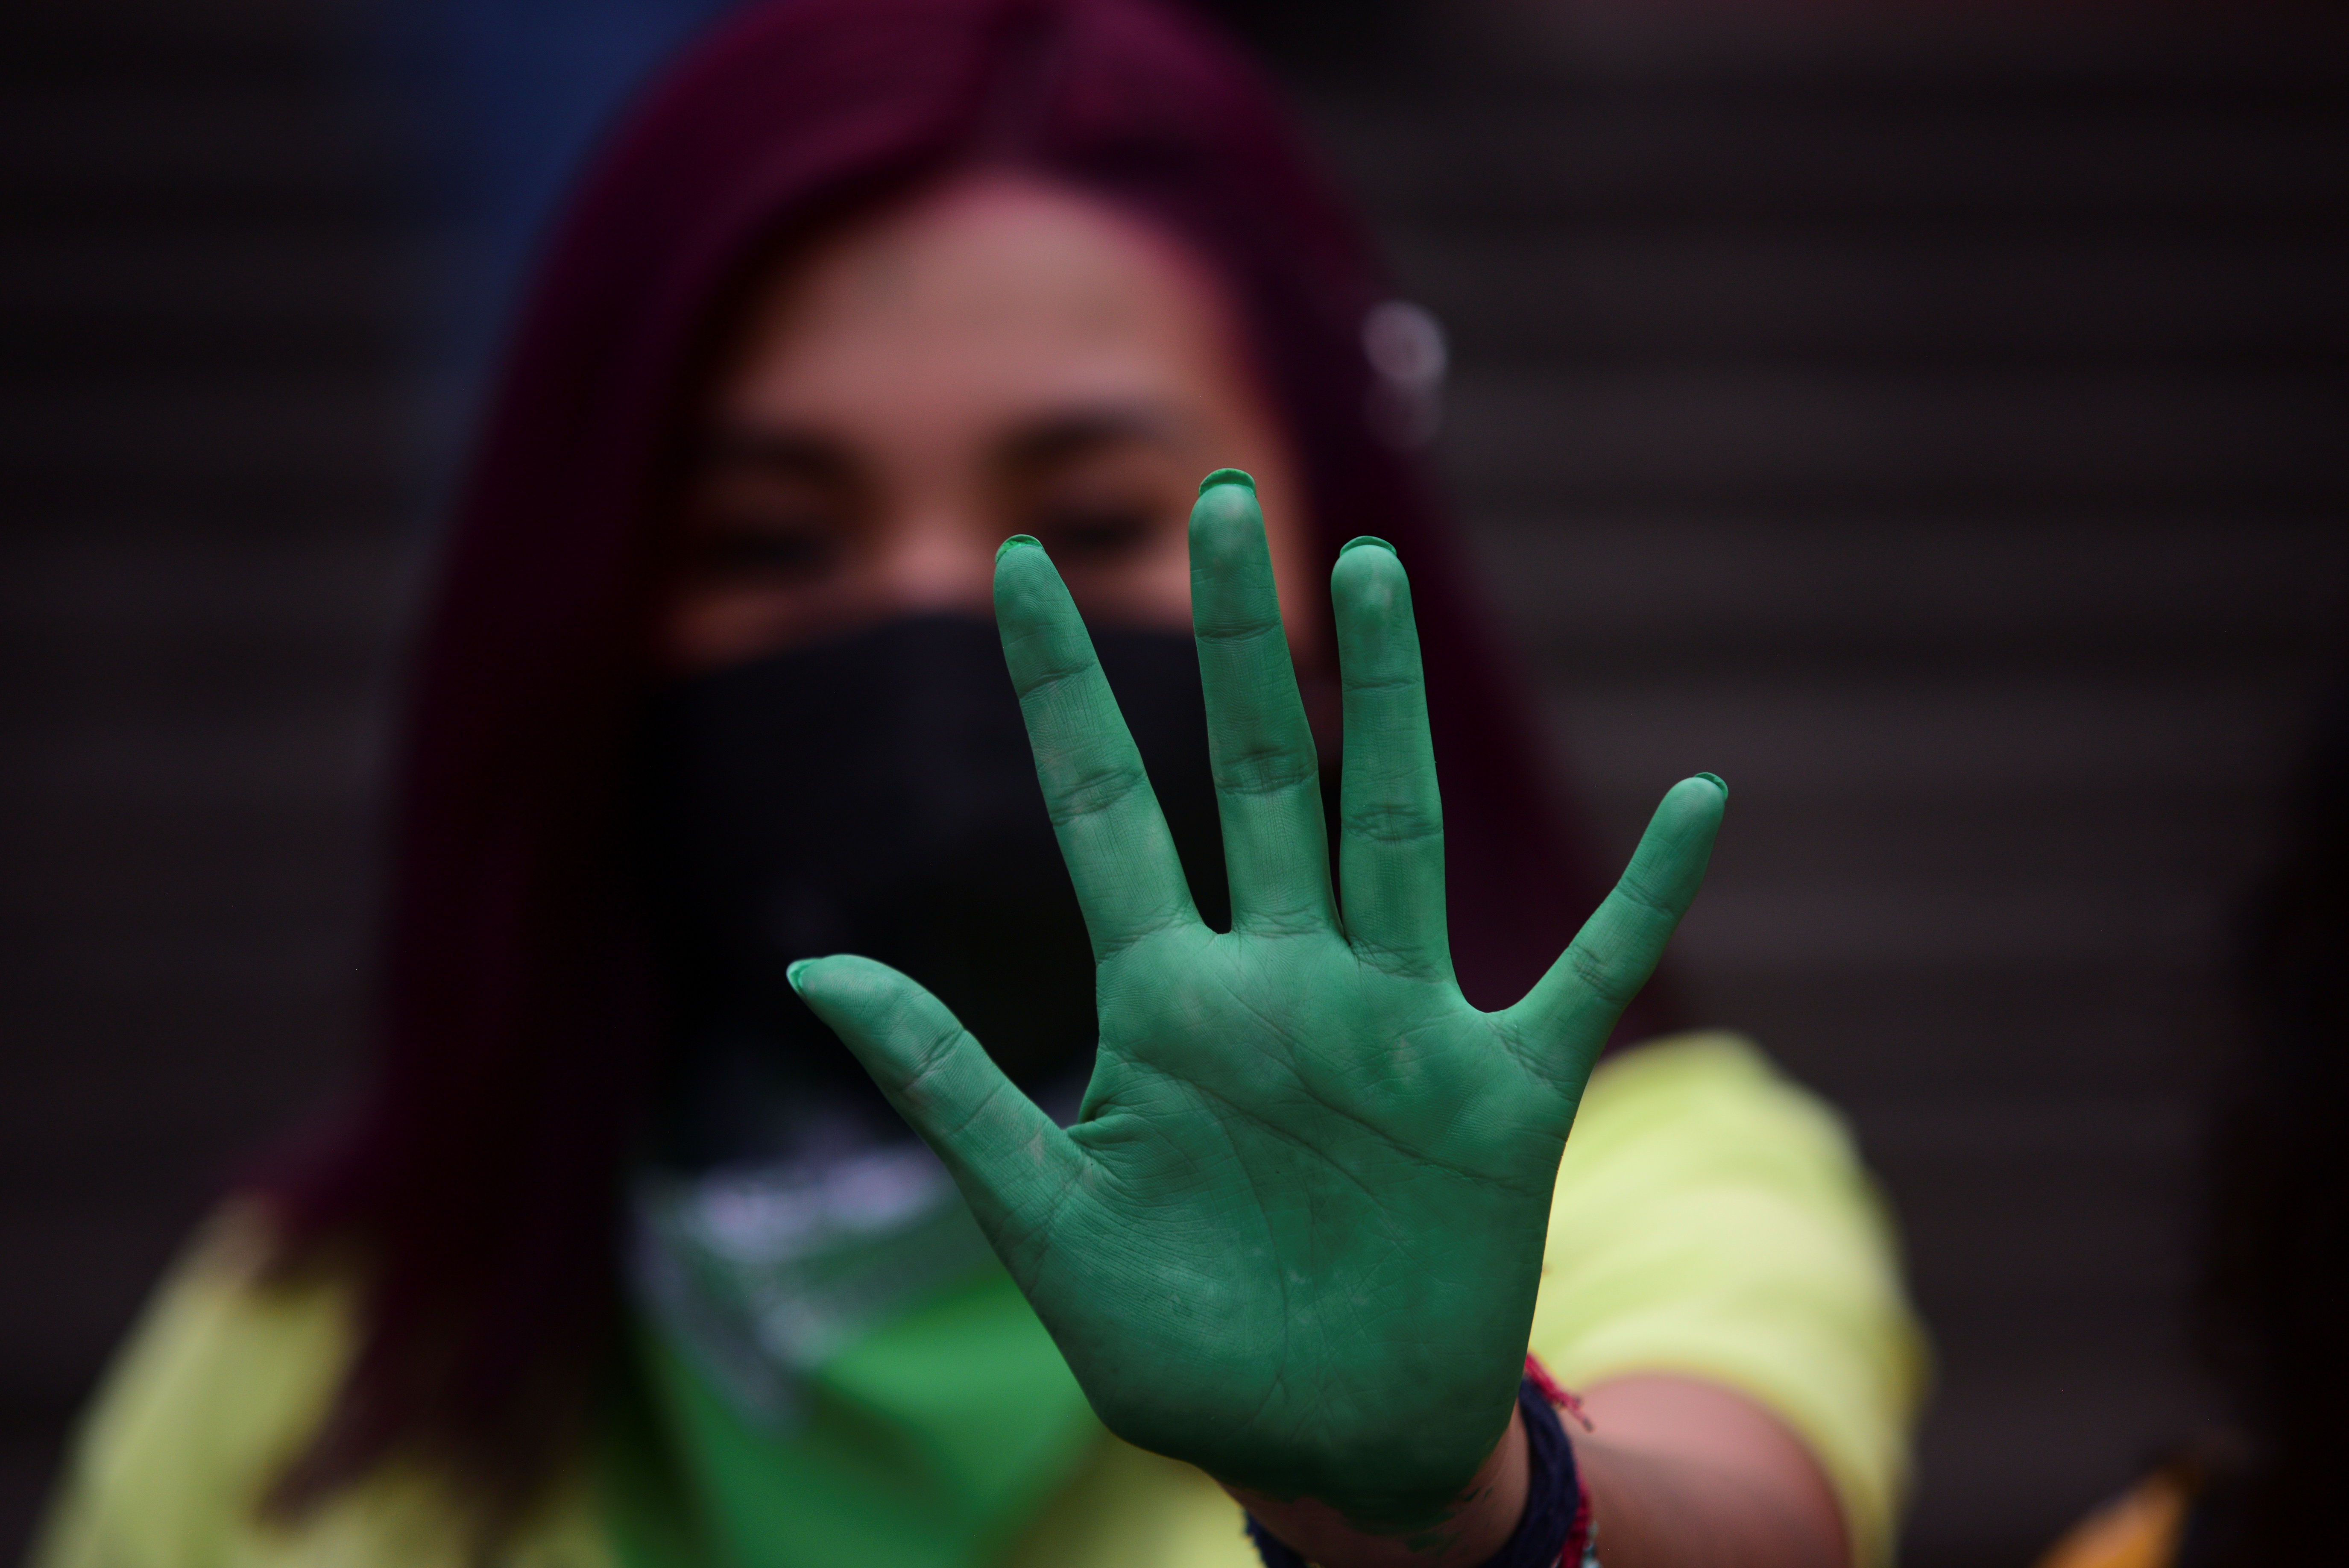 A woman shows her green-tainted palm as she celebrates along other women that Veracruz became the fourth state in Mexico to clear away criminal penalties for elective abortion after lawmakers voted to decriminalize the procedure, at Plaza Lerdo in Xalapa, Mexico July 20, 2021. REUTERS/Oscar Martinez